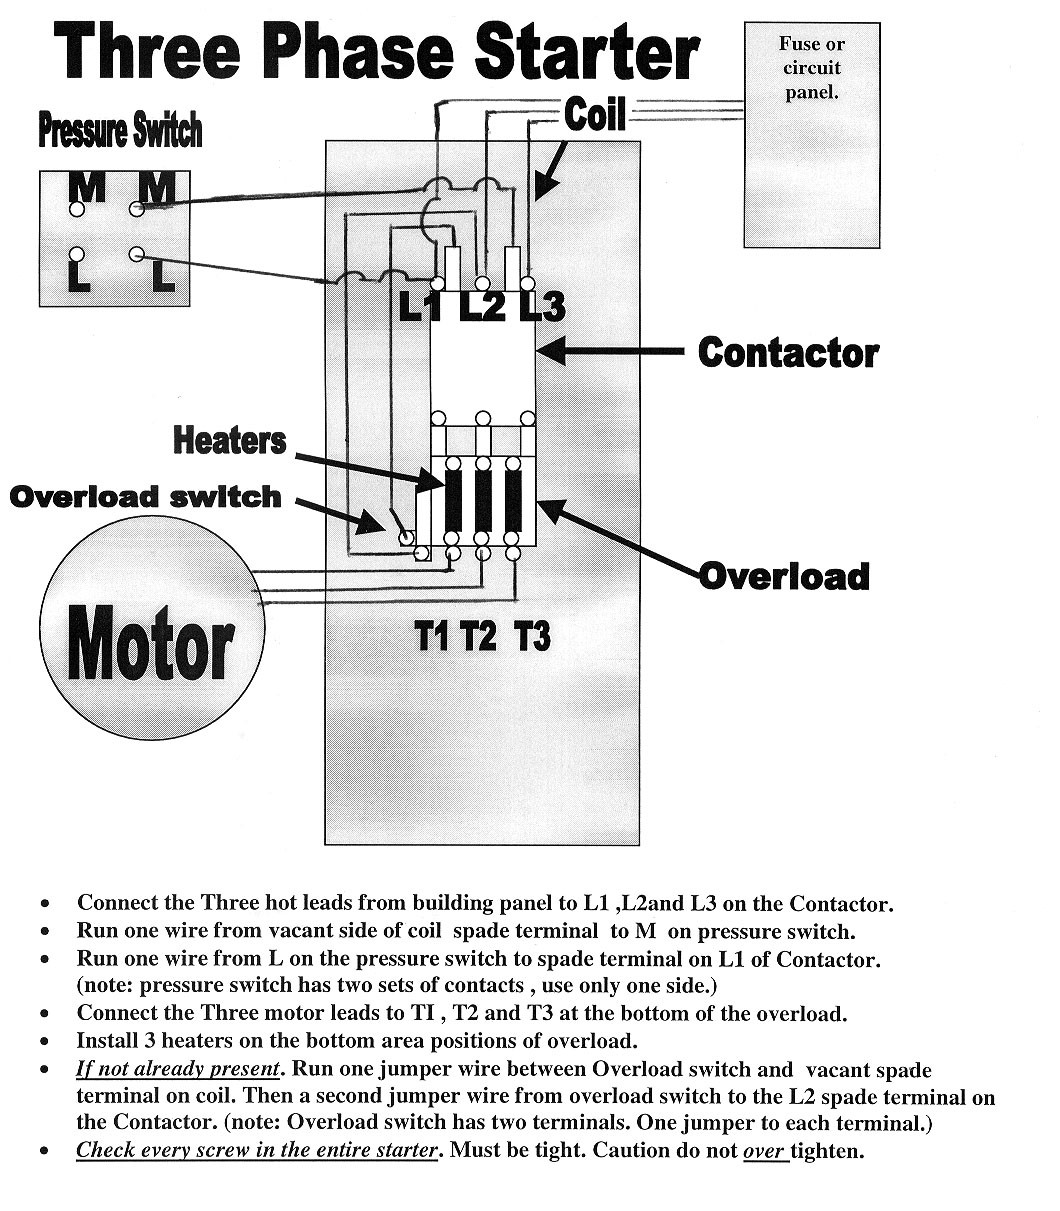 Square D Starters For Three Phase Electric Motor Wiring Diagram